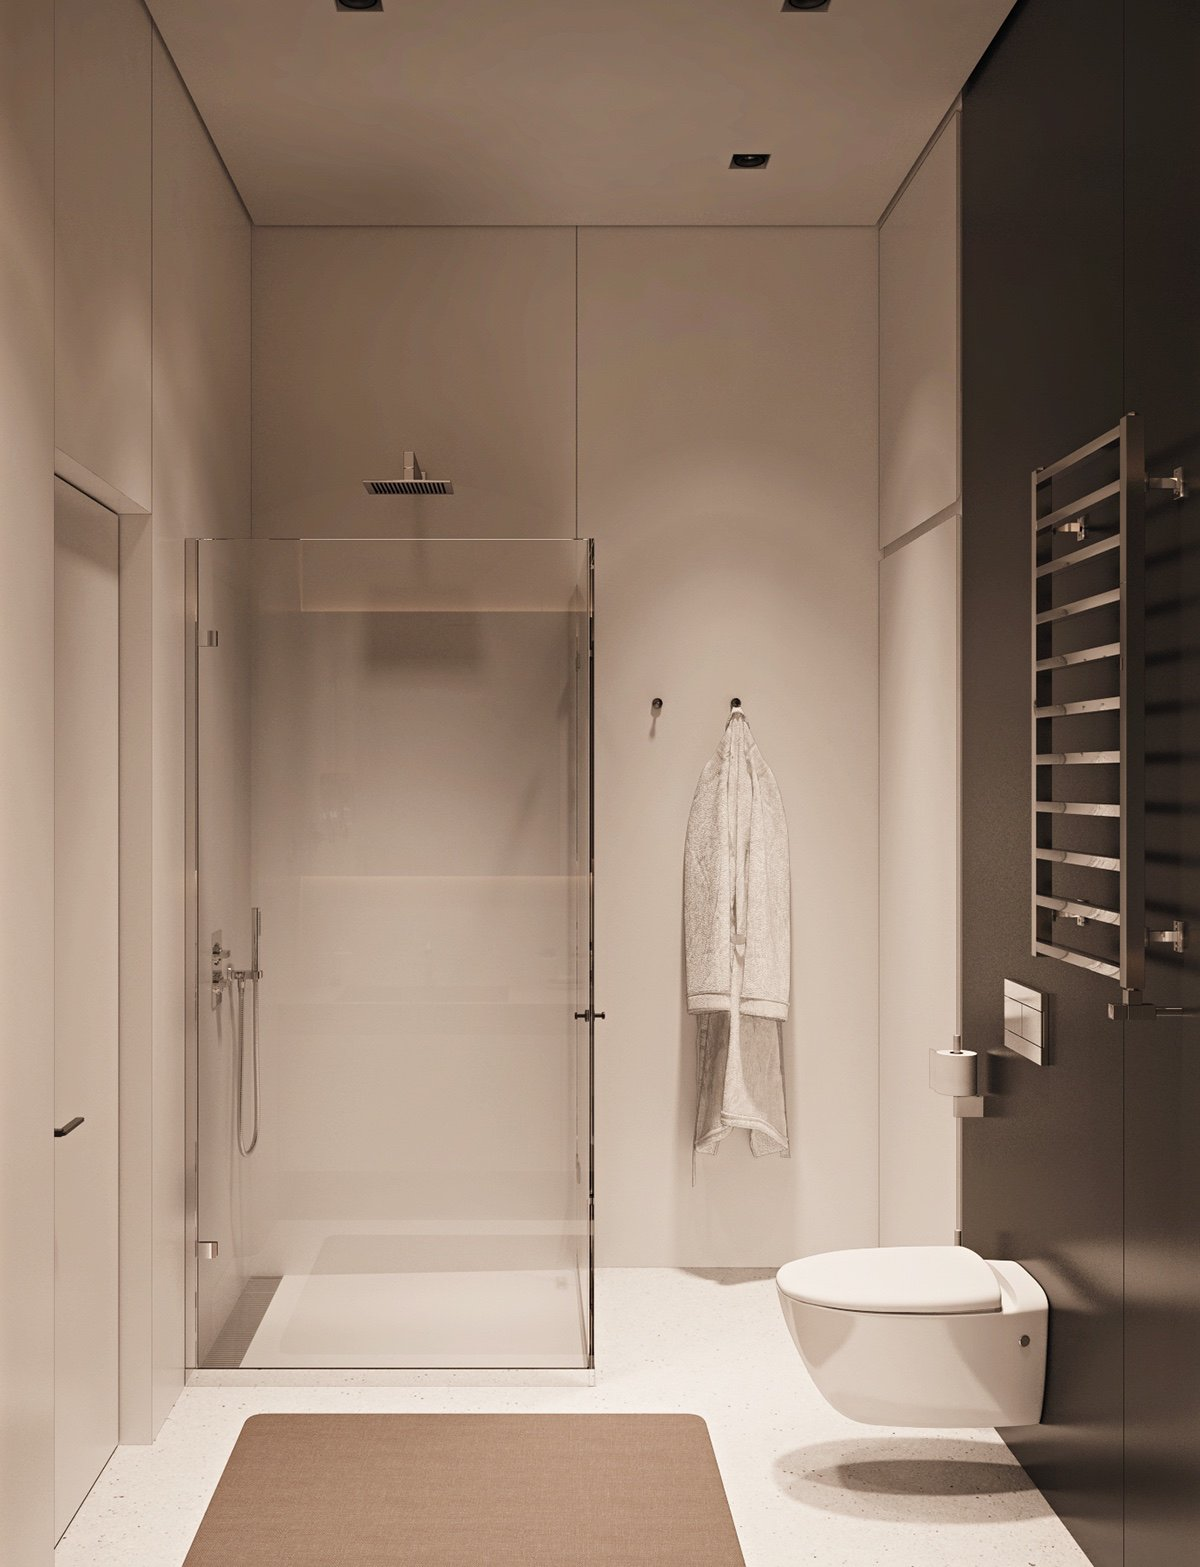 Small space luxury three modern apartments under 40 square metres that ooze class - Luxury shower cubicles ...